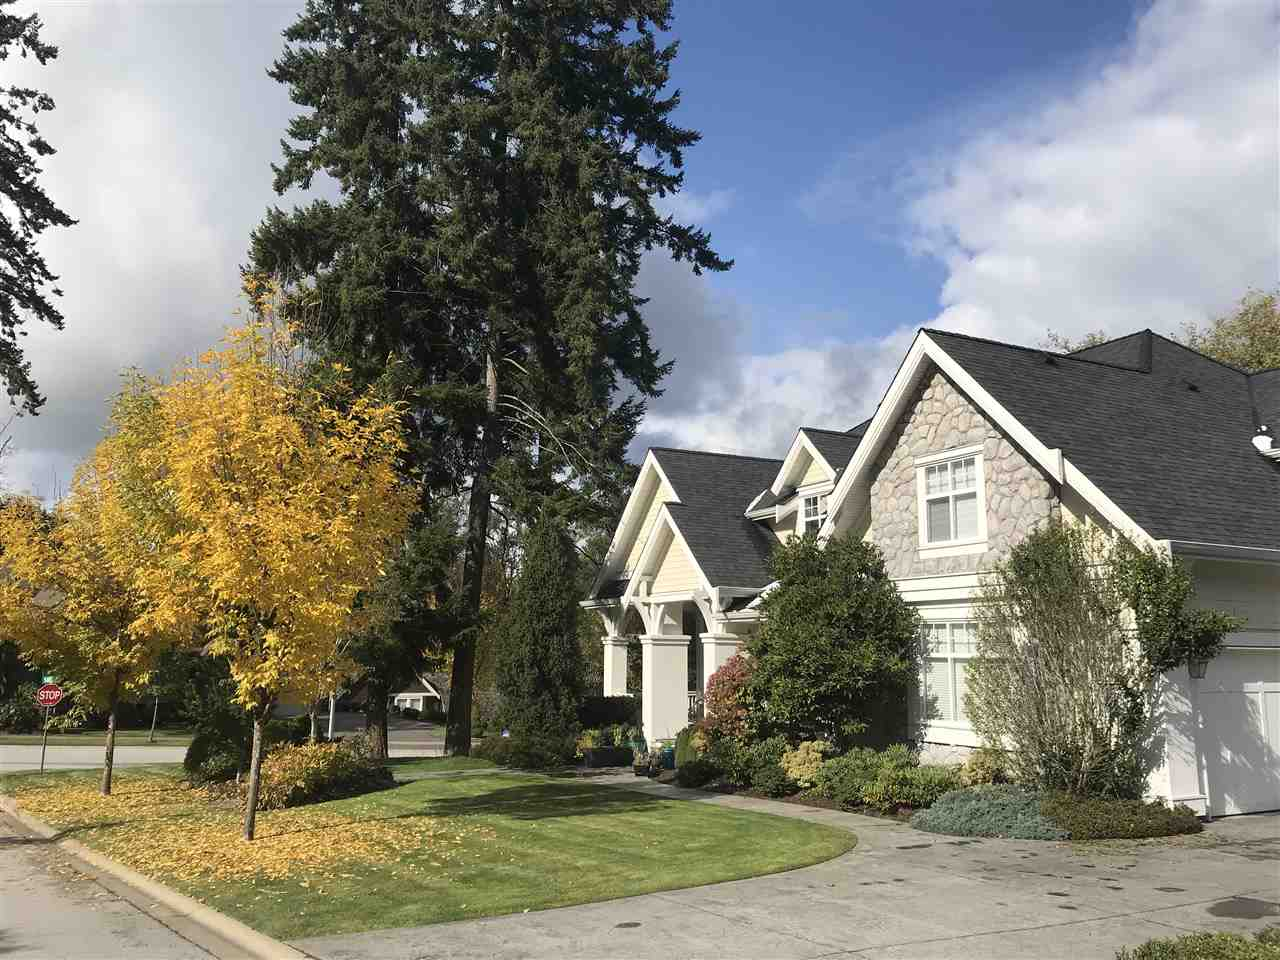 "Main Photo: 14615 29 Avenue in Surrey: Elgin Chantrell House for sale in ""Elgin/Chantrell"" (South Surrey White Rock)  : MLS® # R2214100"